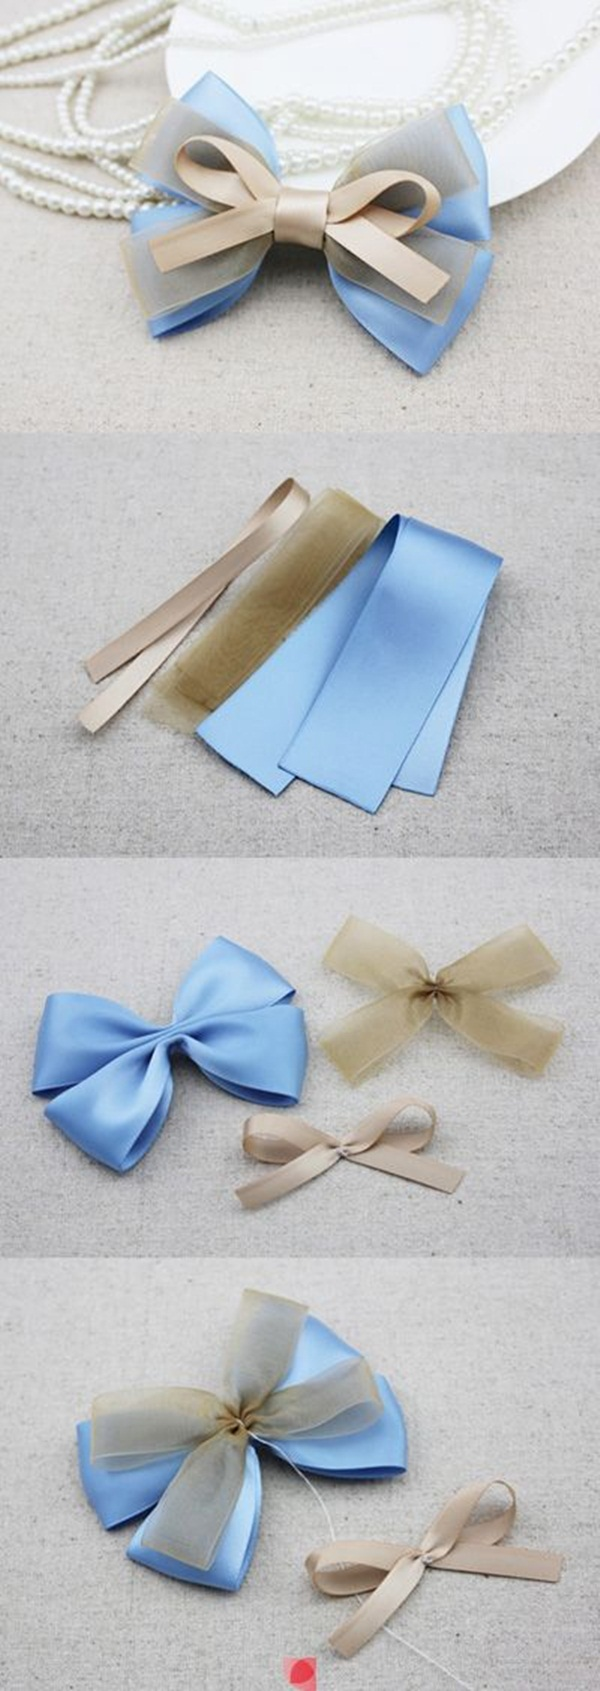 How To Make A Bow (Step By Step Image Guides)